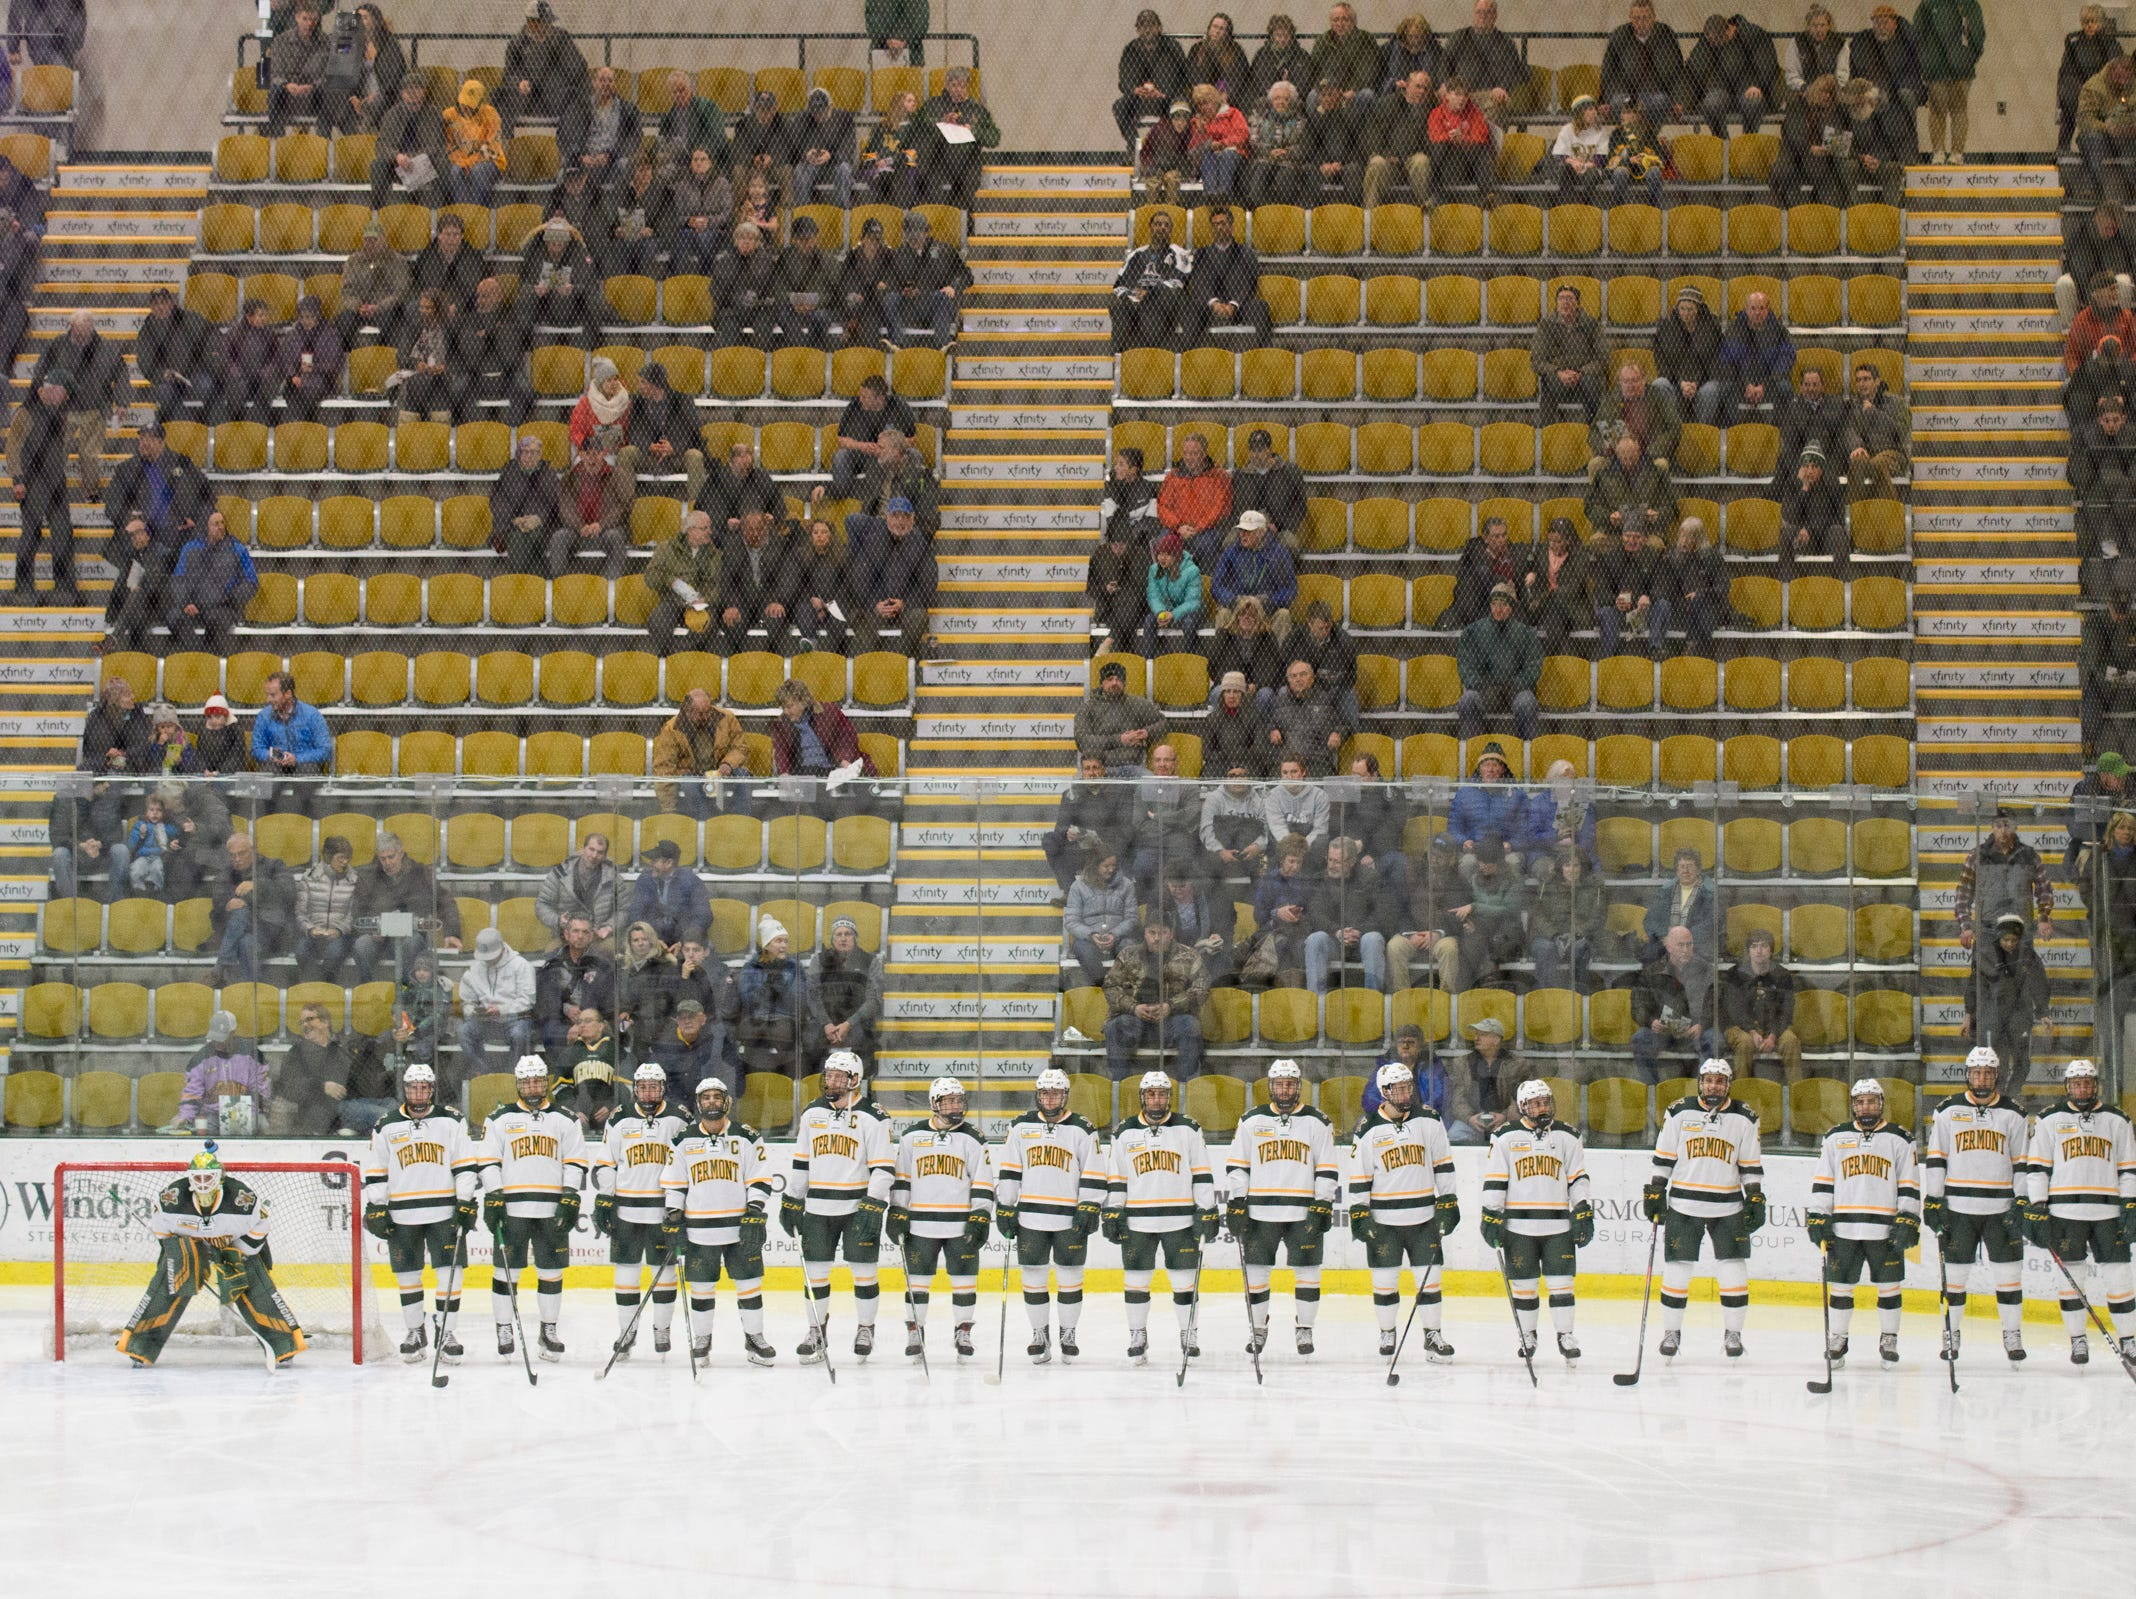 Vermont stands at the blue line for player introductions during the men's hockey game between the New Hampshire Wildcats and the Vermont Catamounts at Gutterson Field House on Friday night February 8, 2019 in Burlington, Vermont.